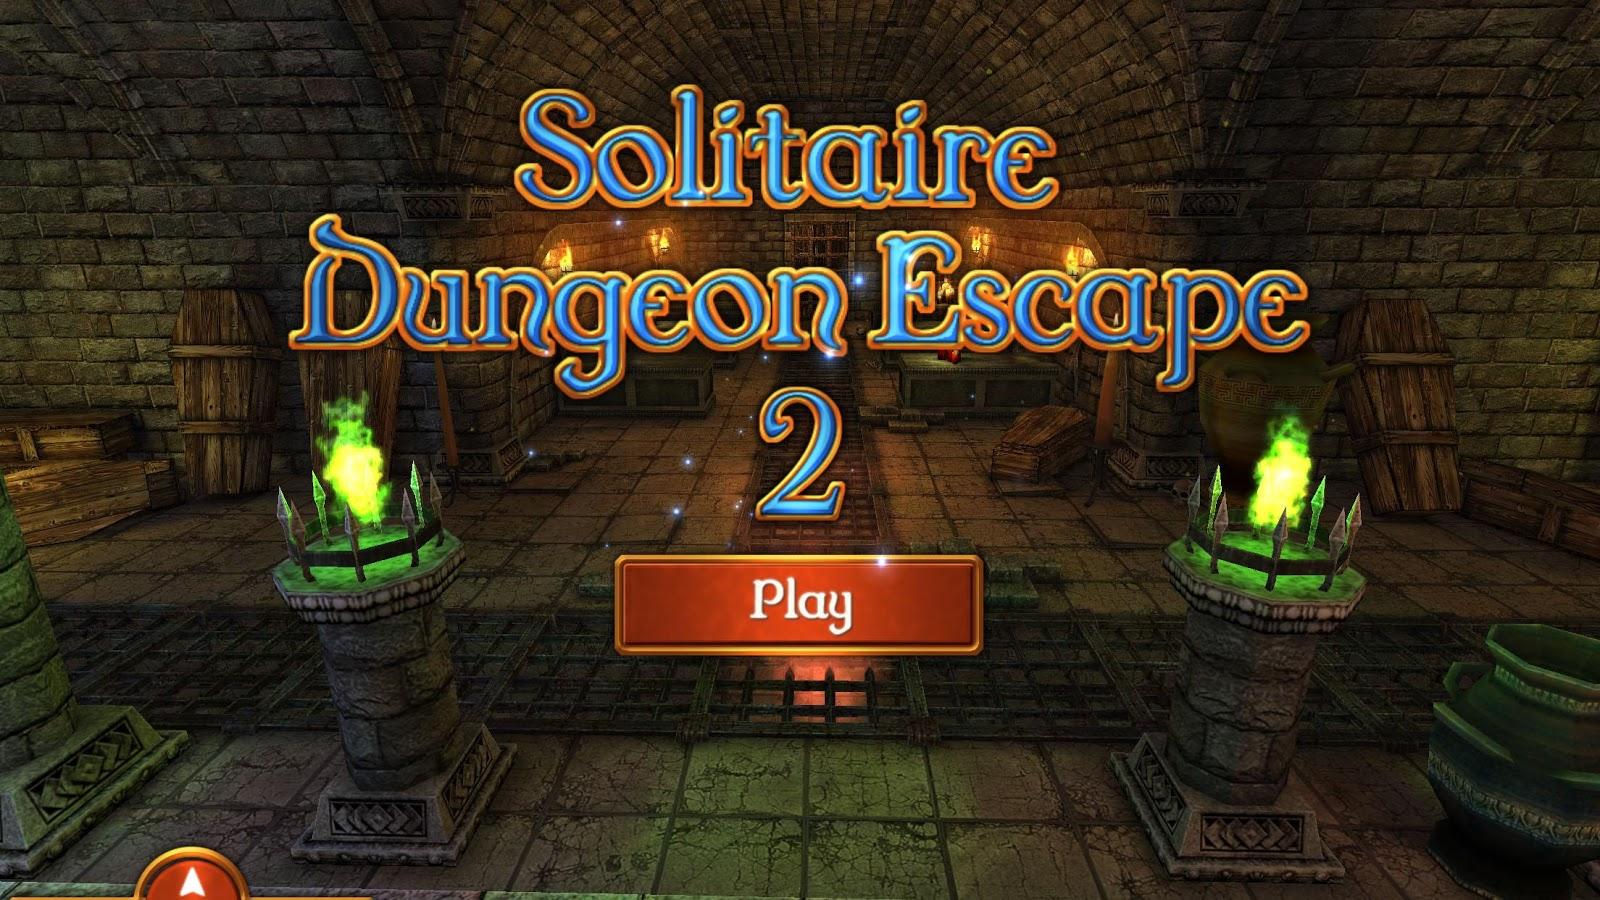 Solitaire Dungeon Escape 2 Screenshot 10